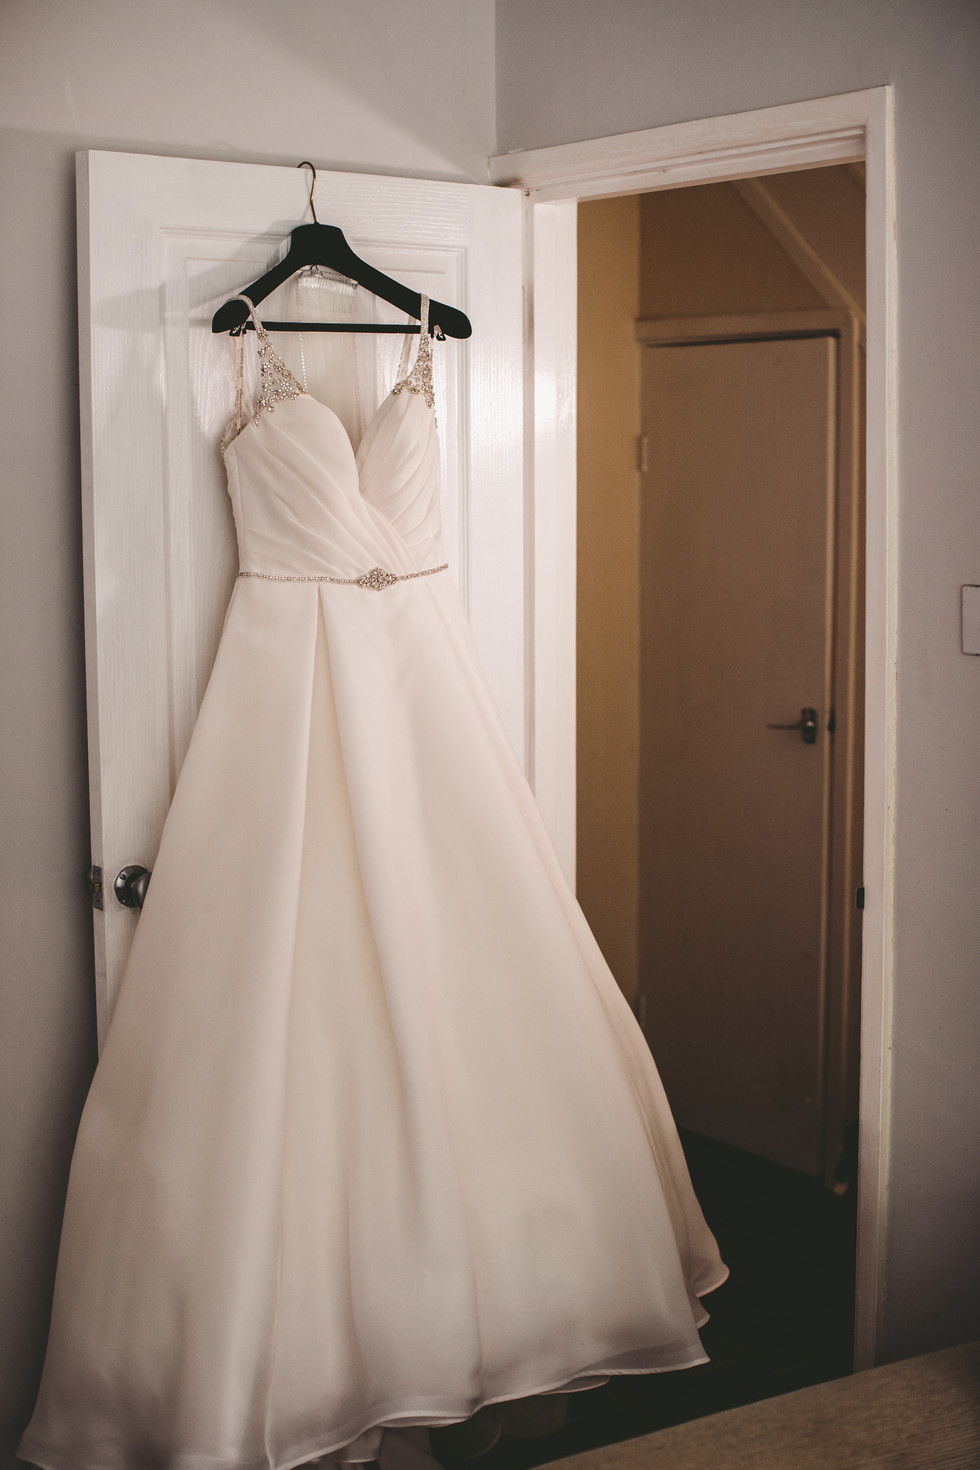 dress at Oxwich Bay Hotel South Wales